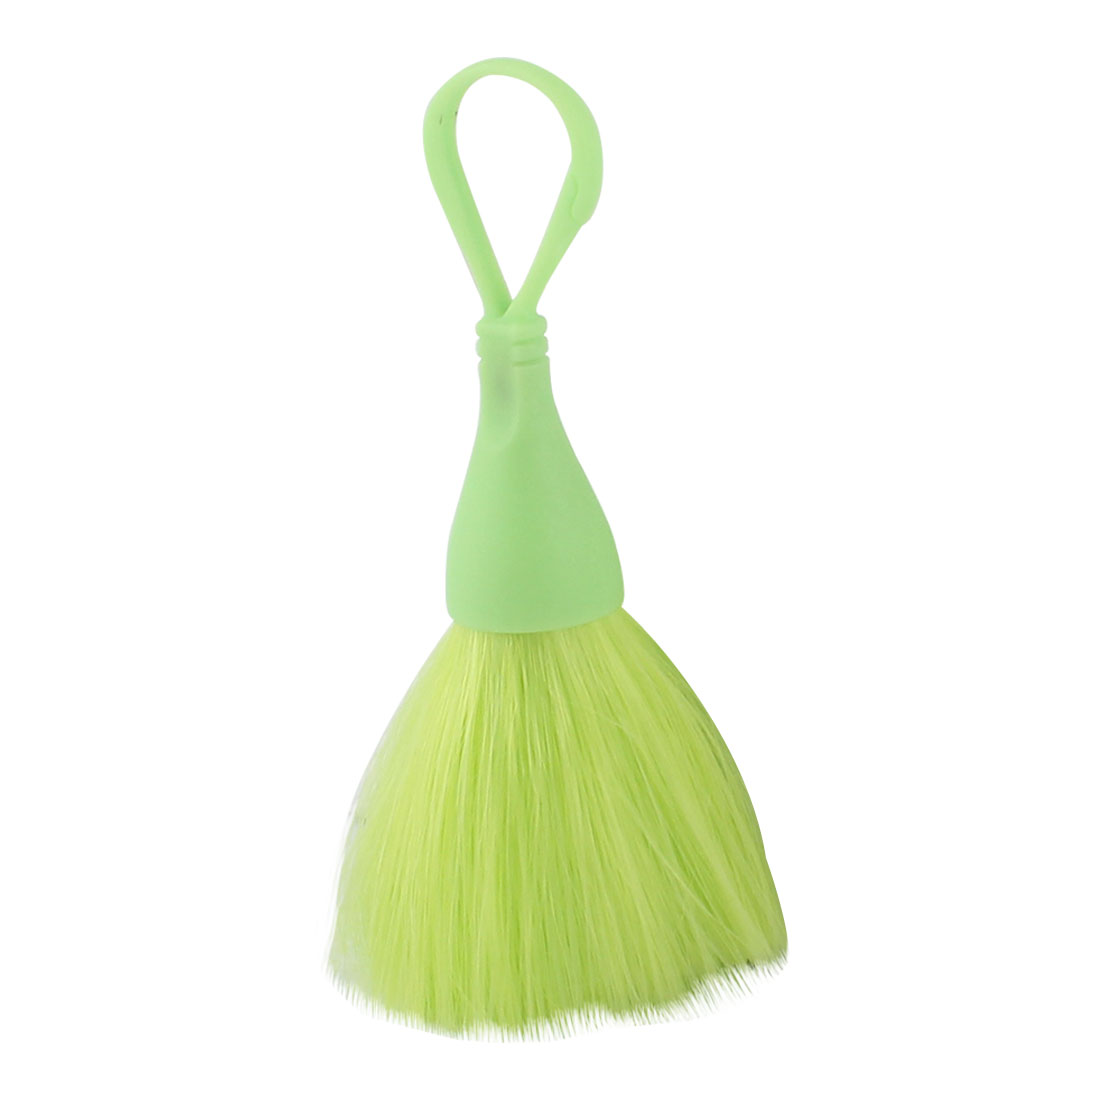 Keyboards Fans Vents Machine Plastic Handle Anti Static Dedusting Cleaning Brush Green